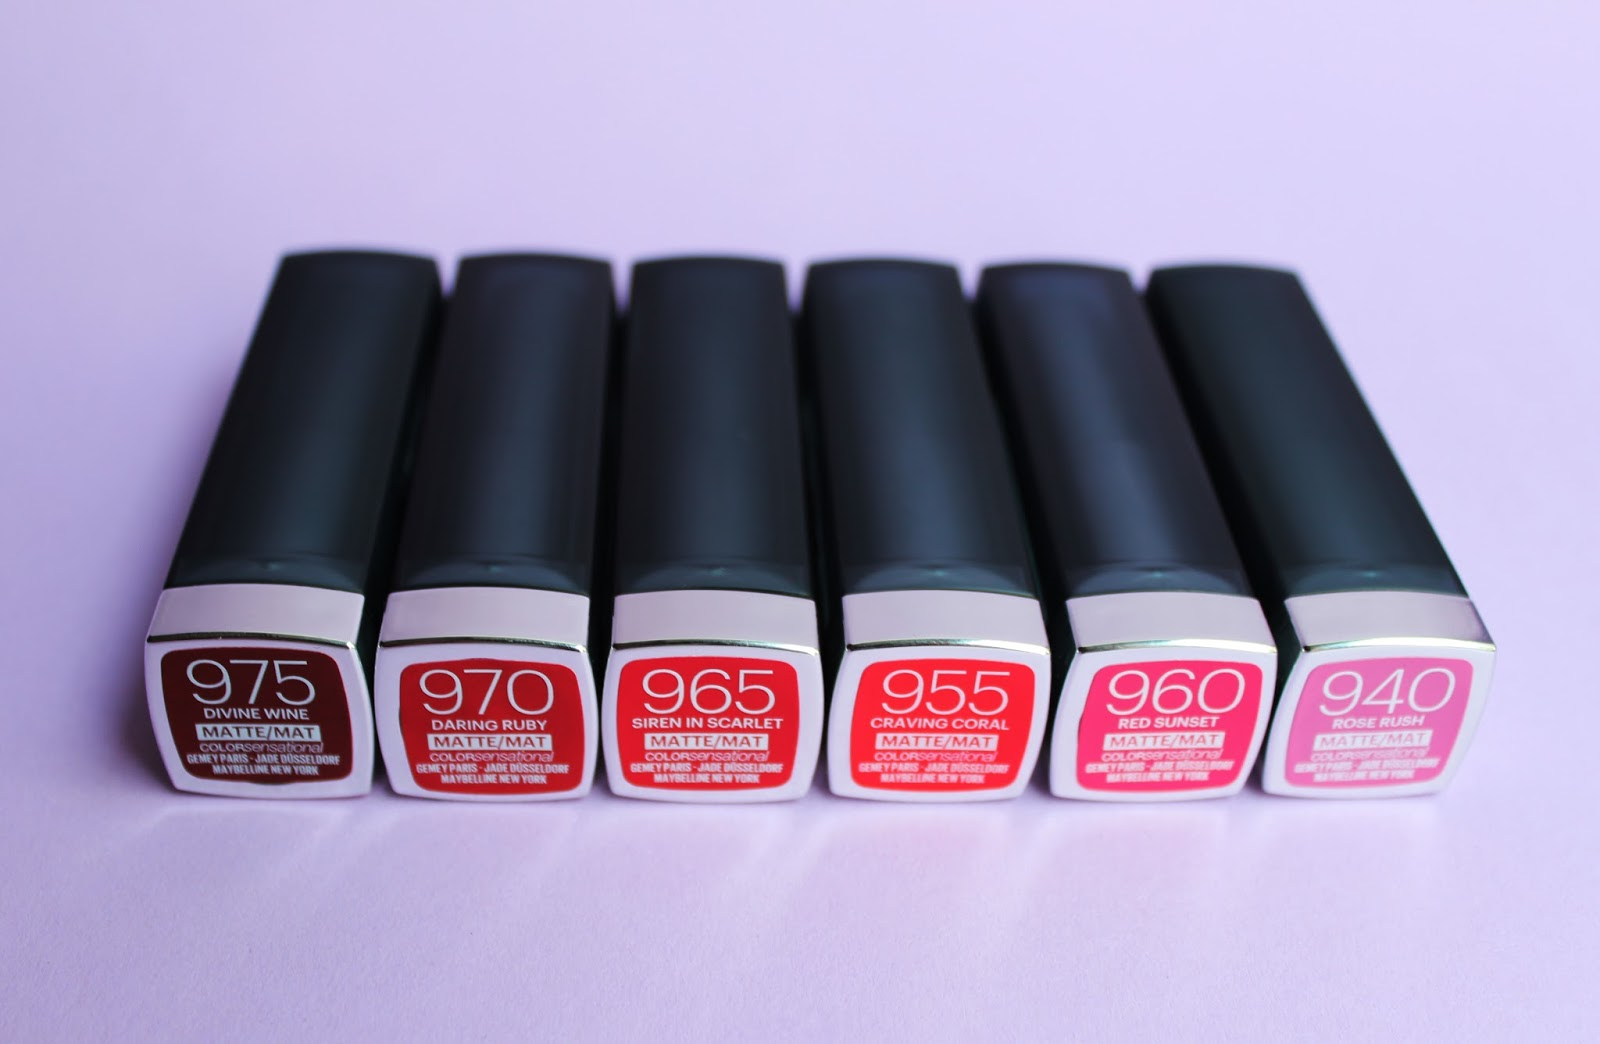 #975 Divine Wine, #970 Daring Ruby, #965 Siren in Scarlet, #955 Craving Coral, #960 Red Sunset, #940 Rose Rush.